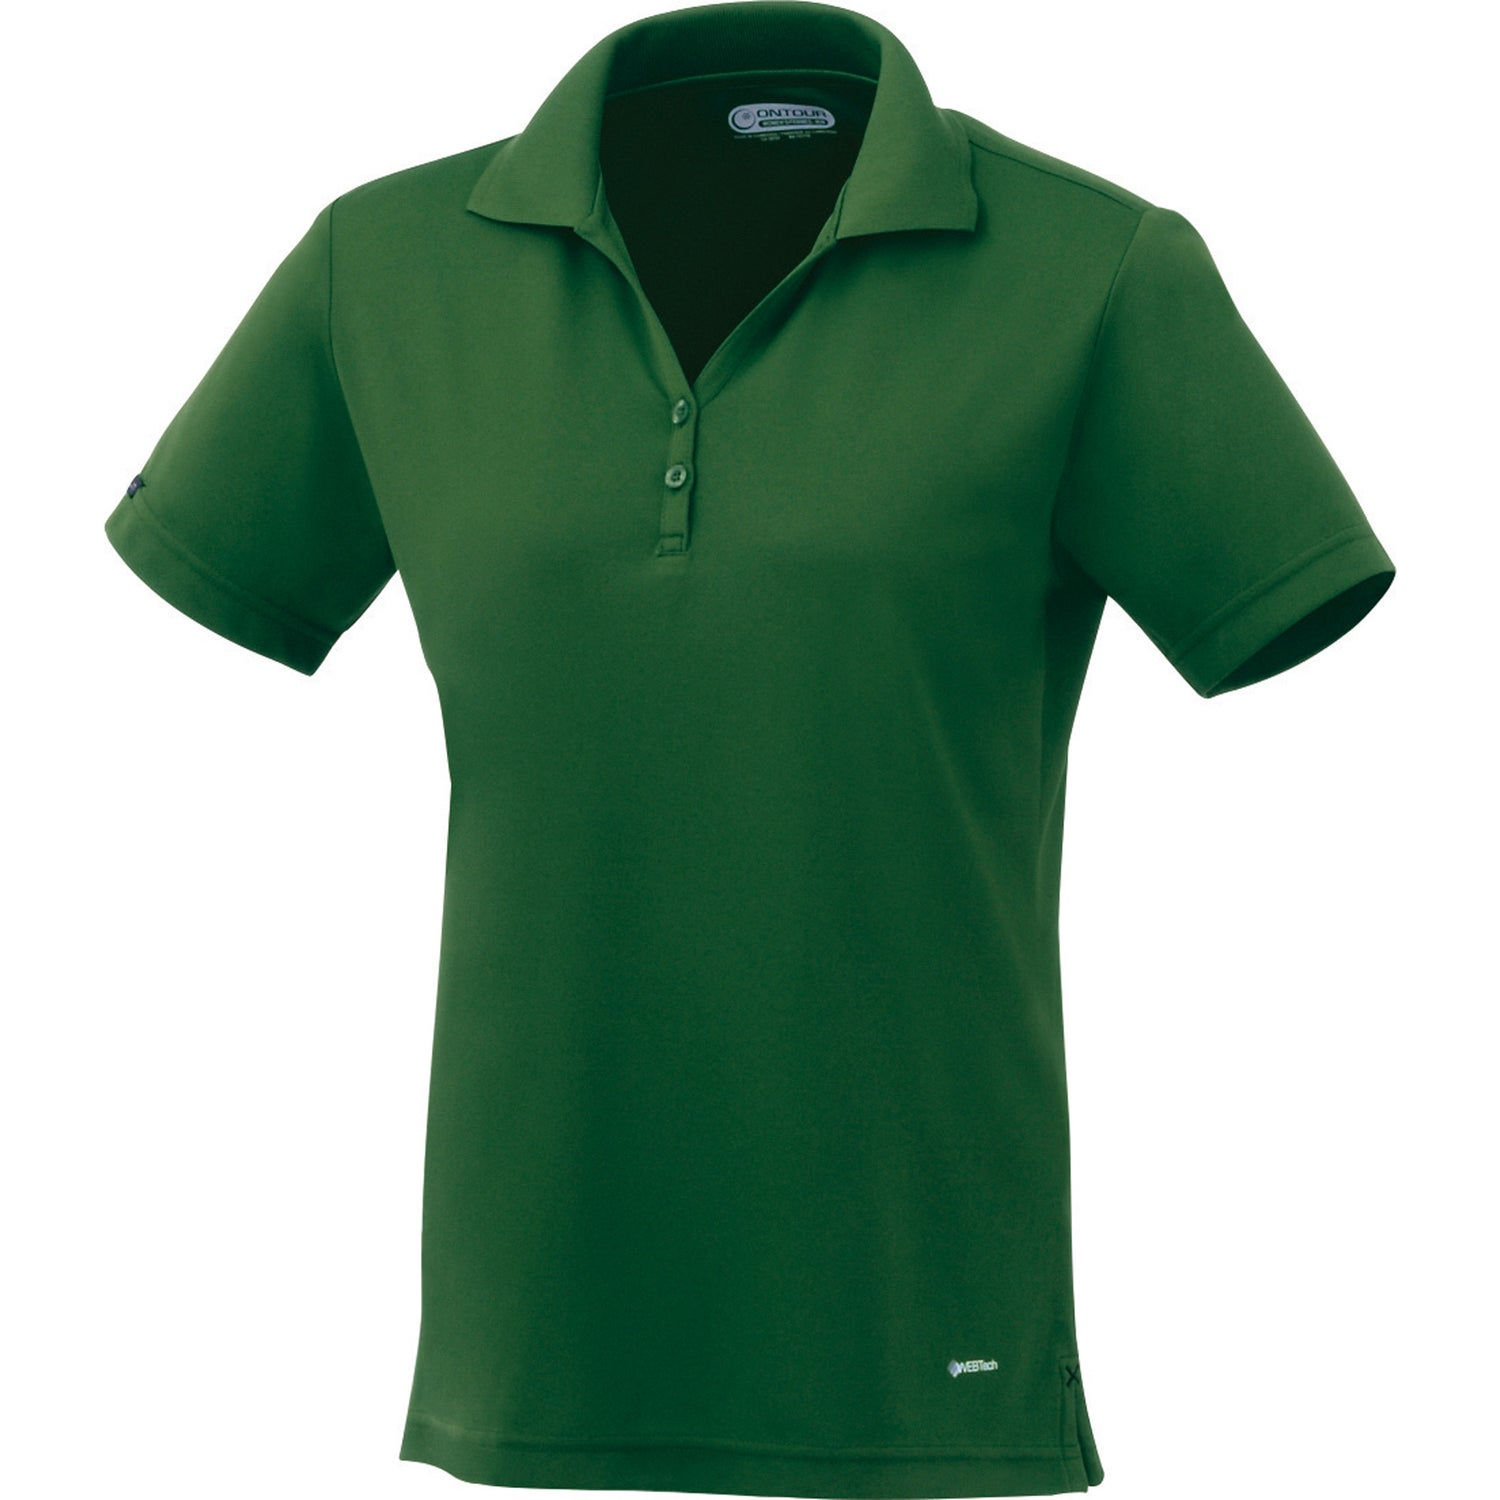 Moreno short sleeve polo shirt by trimark women 39 s for Quality polo shirts with company logo